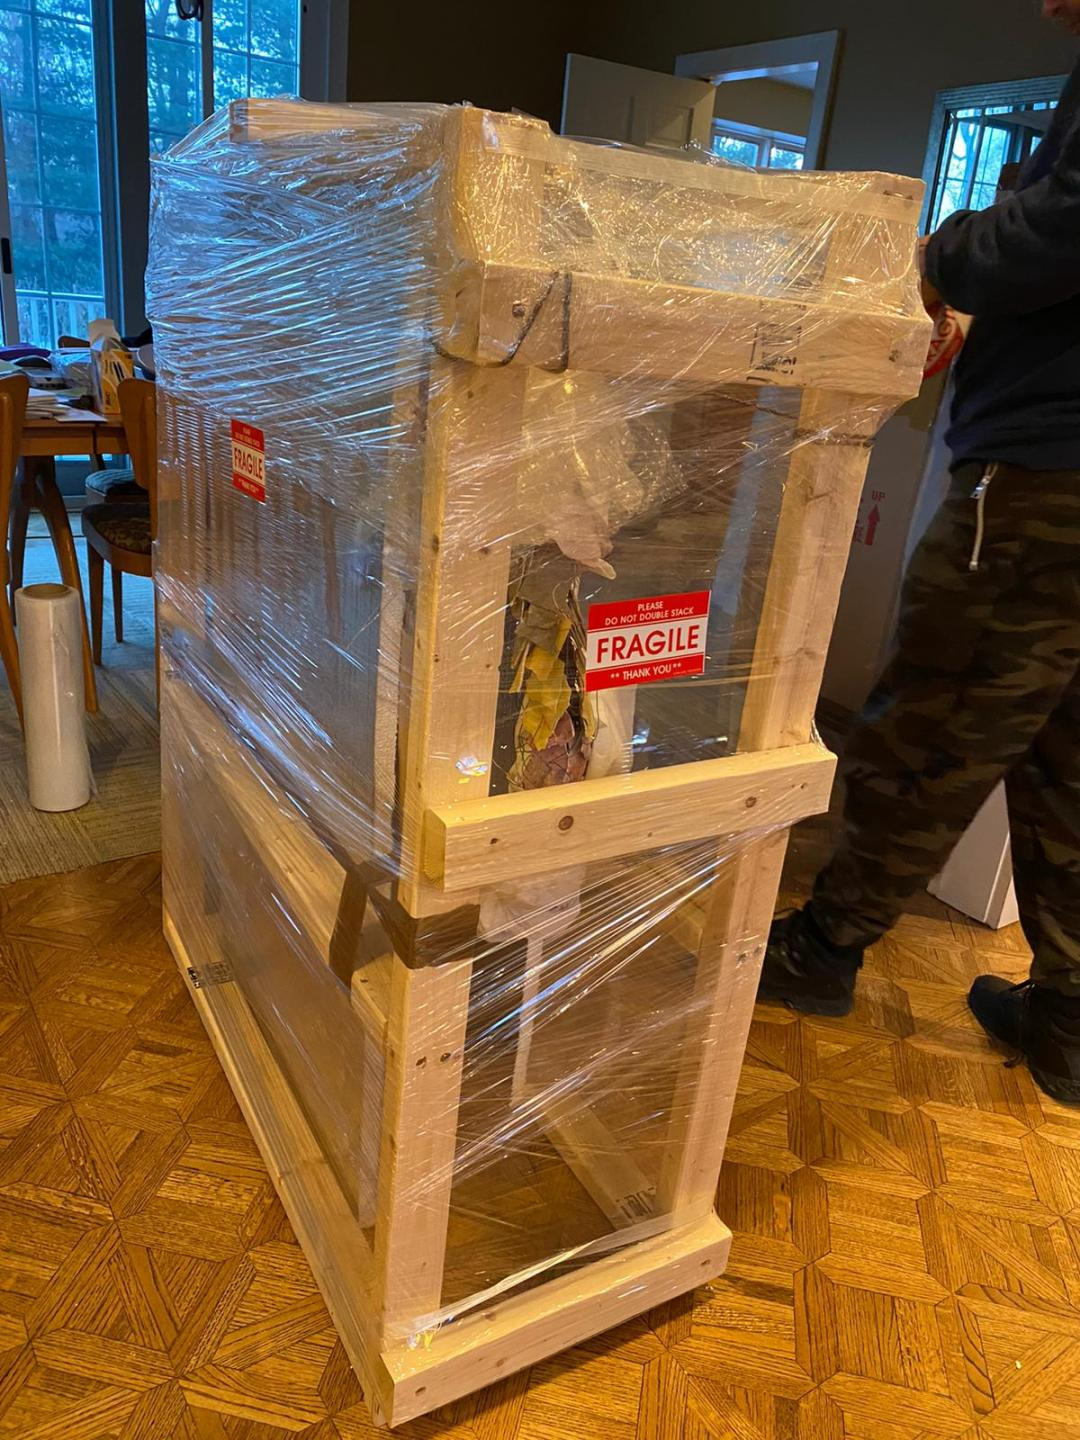 Packing and Shipping Unusual Artworks